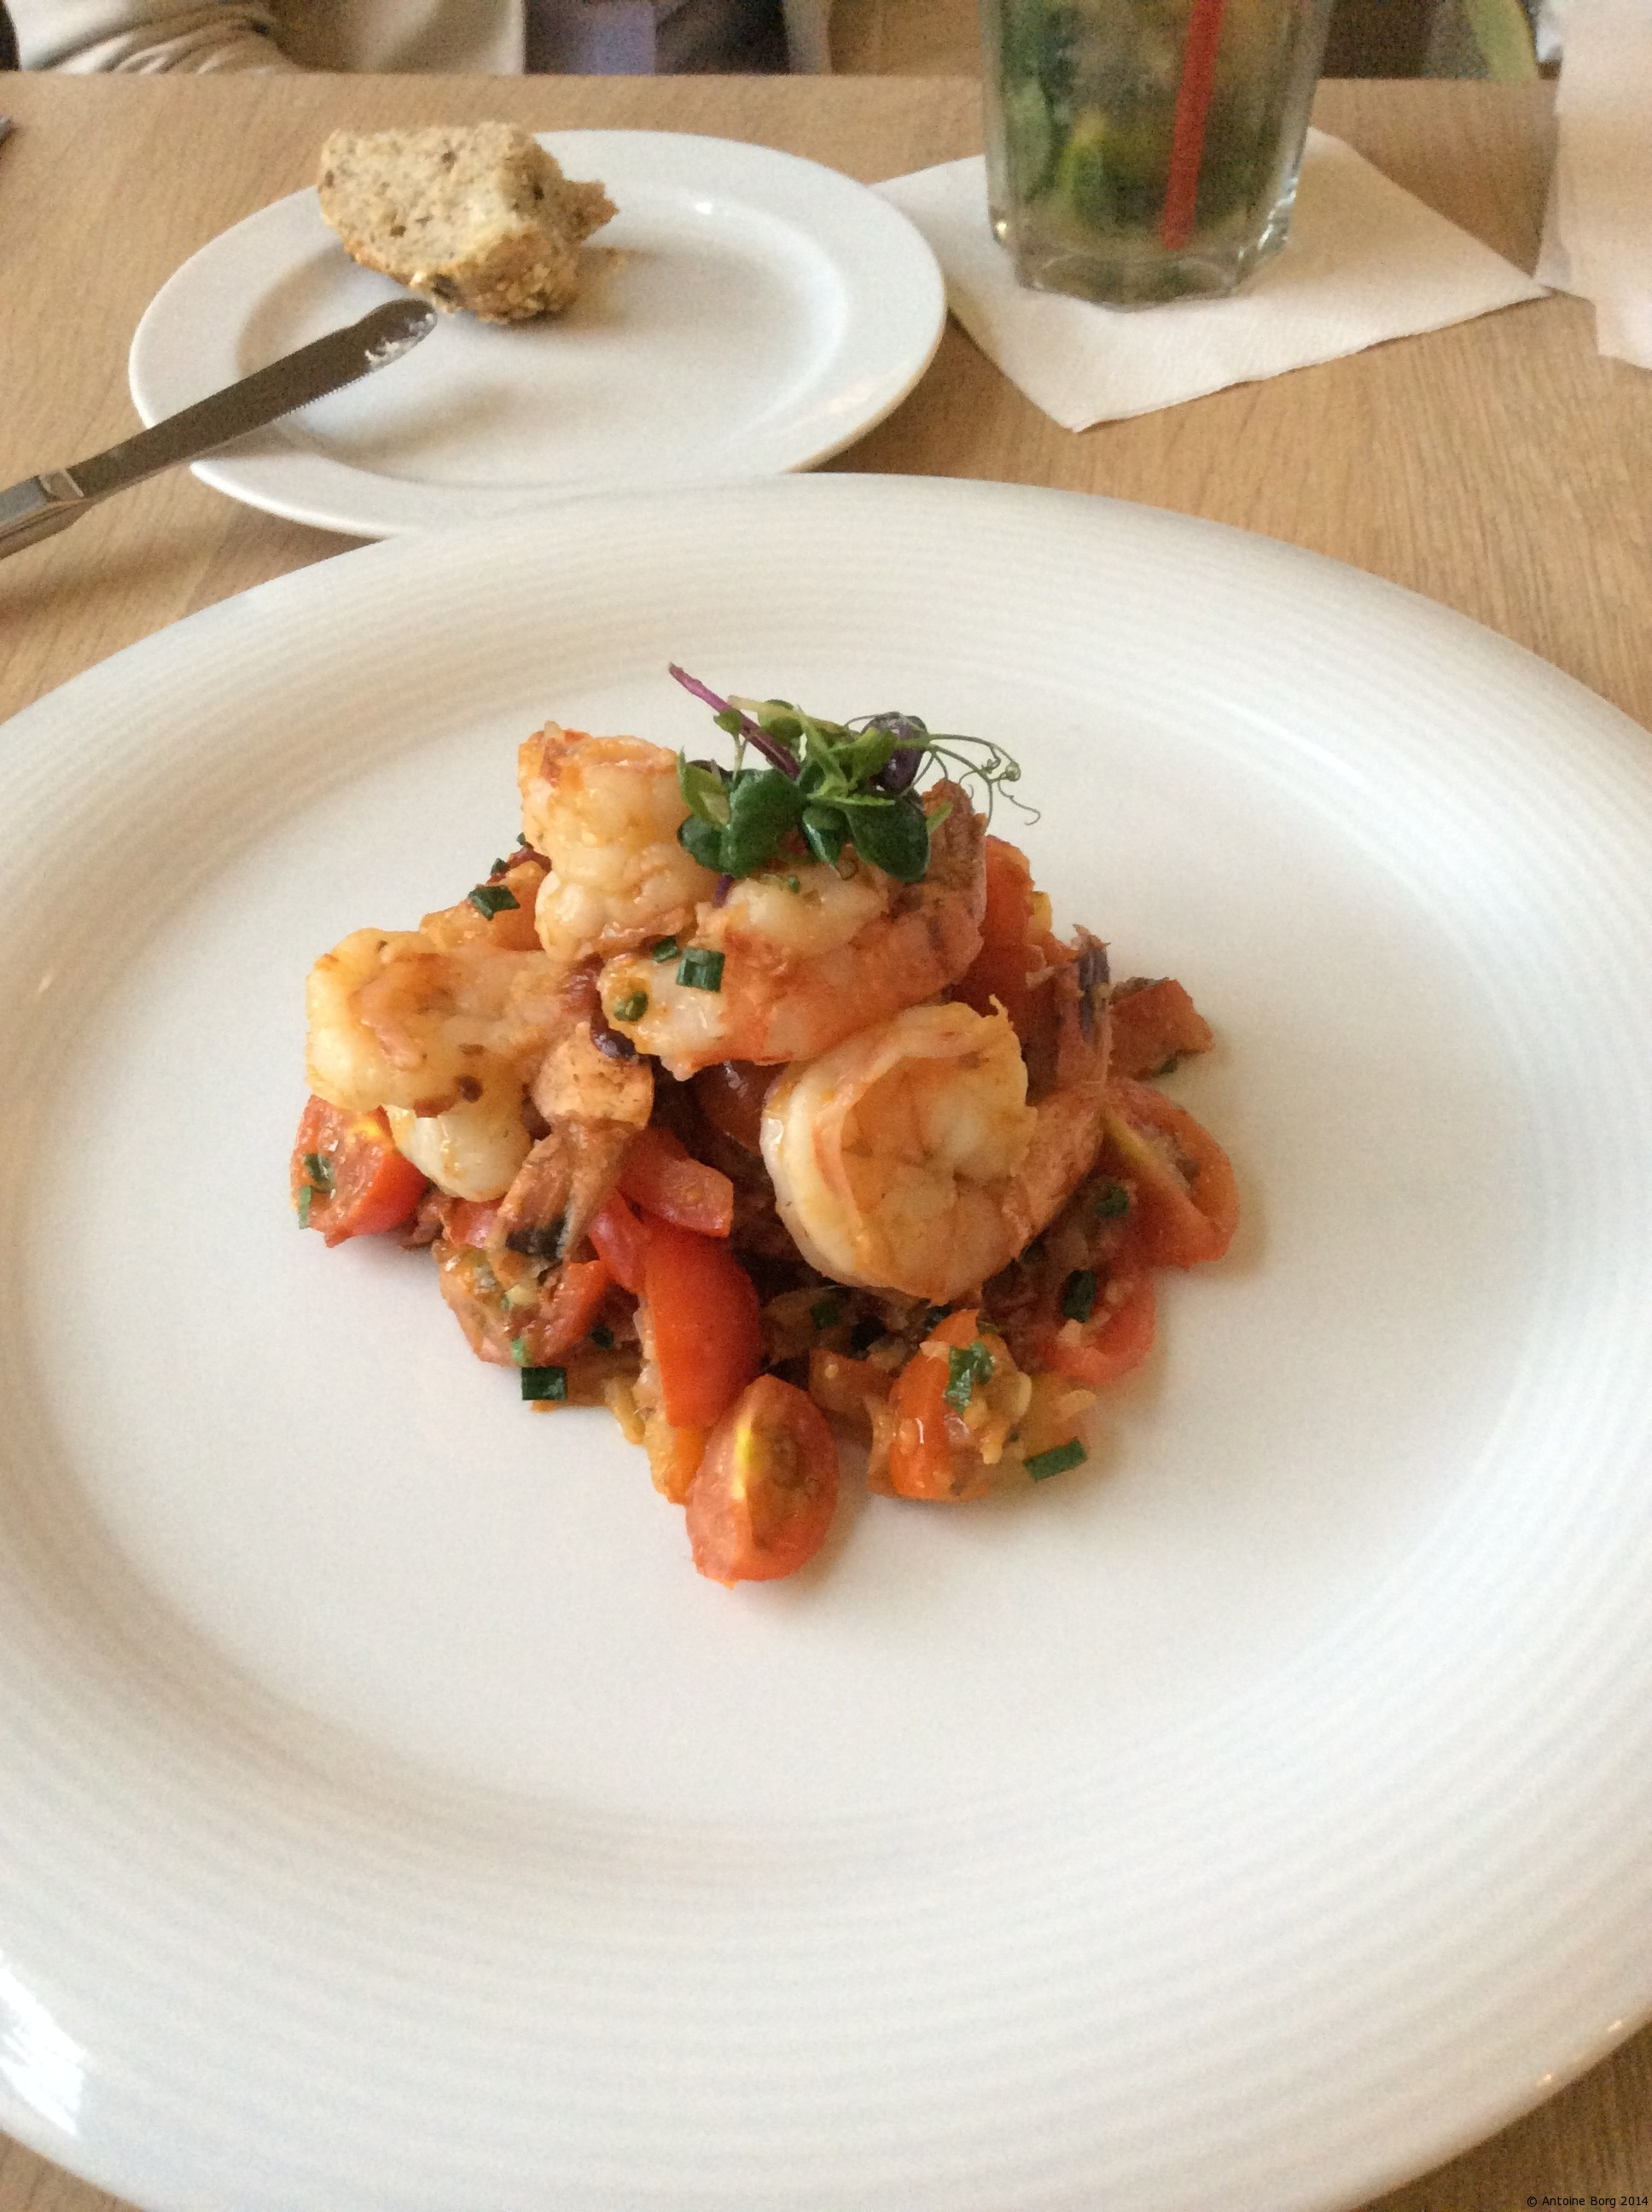 Shrimp on a bed of tomato salsa, sliced cherry tomatoes and sun-dried tomatoes